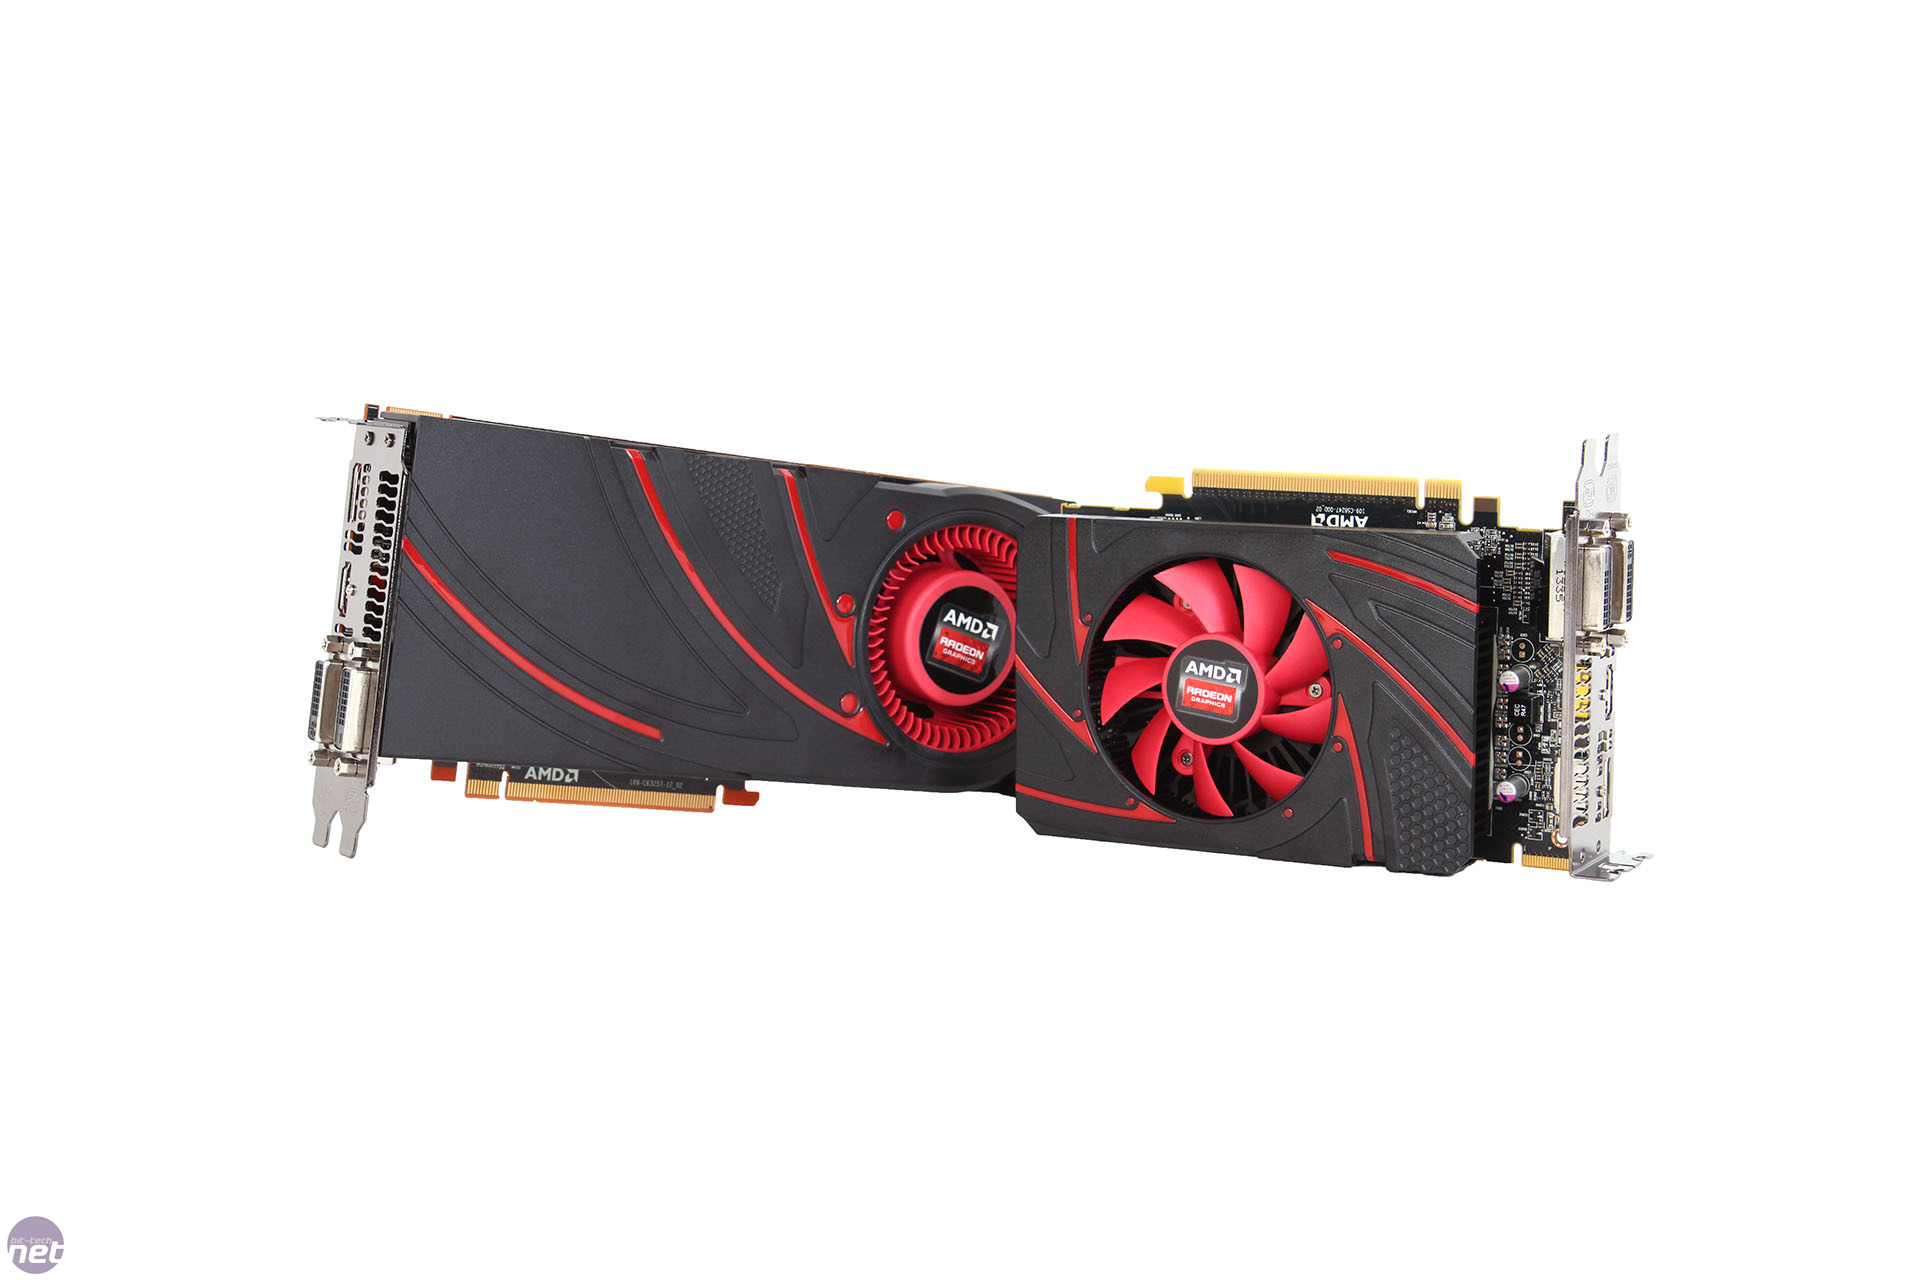 AMD Radeon R9 280X, R9 270X and R7 260X Reviews | bit-tech net